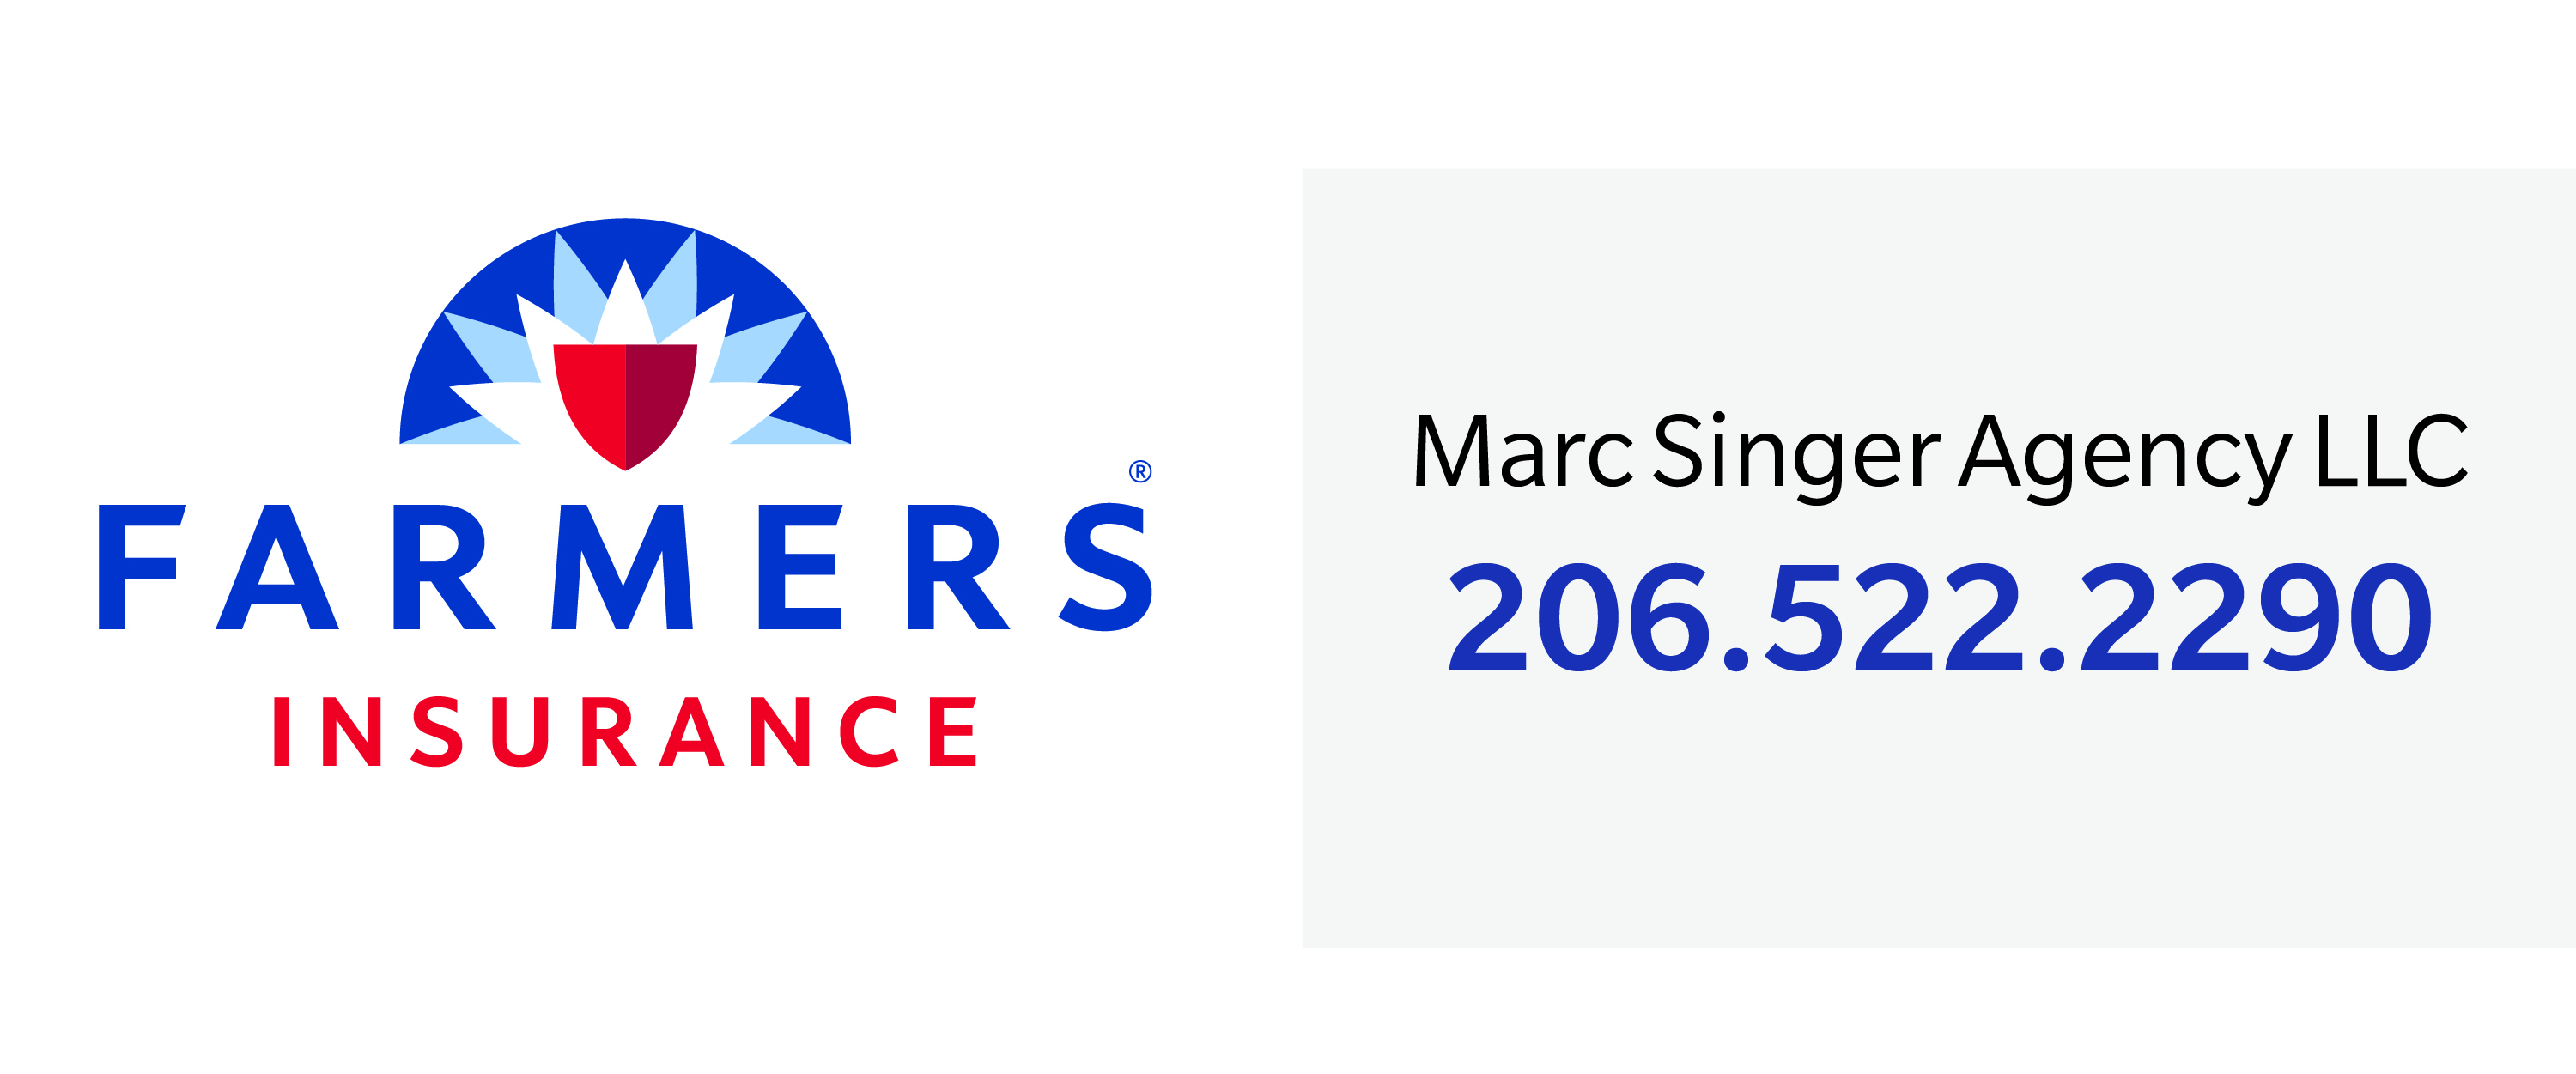 Marc Singer Agency